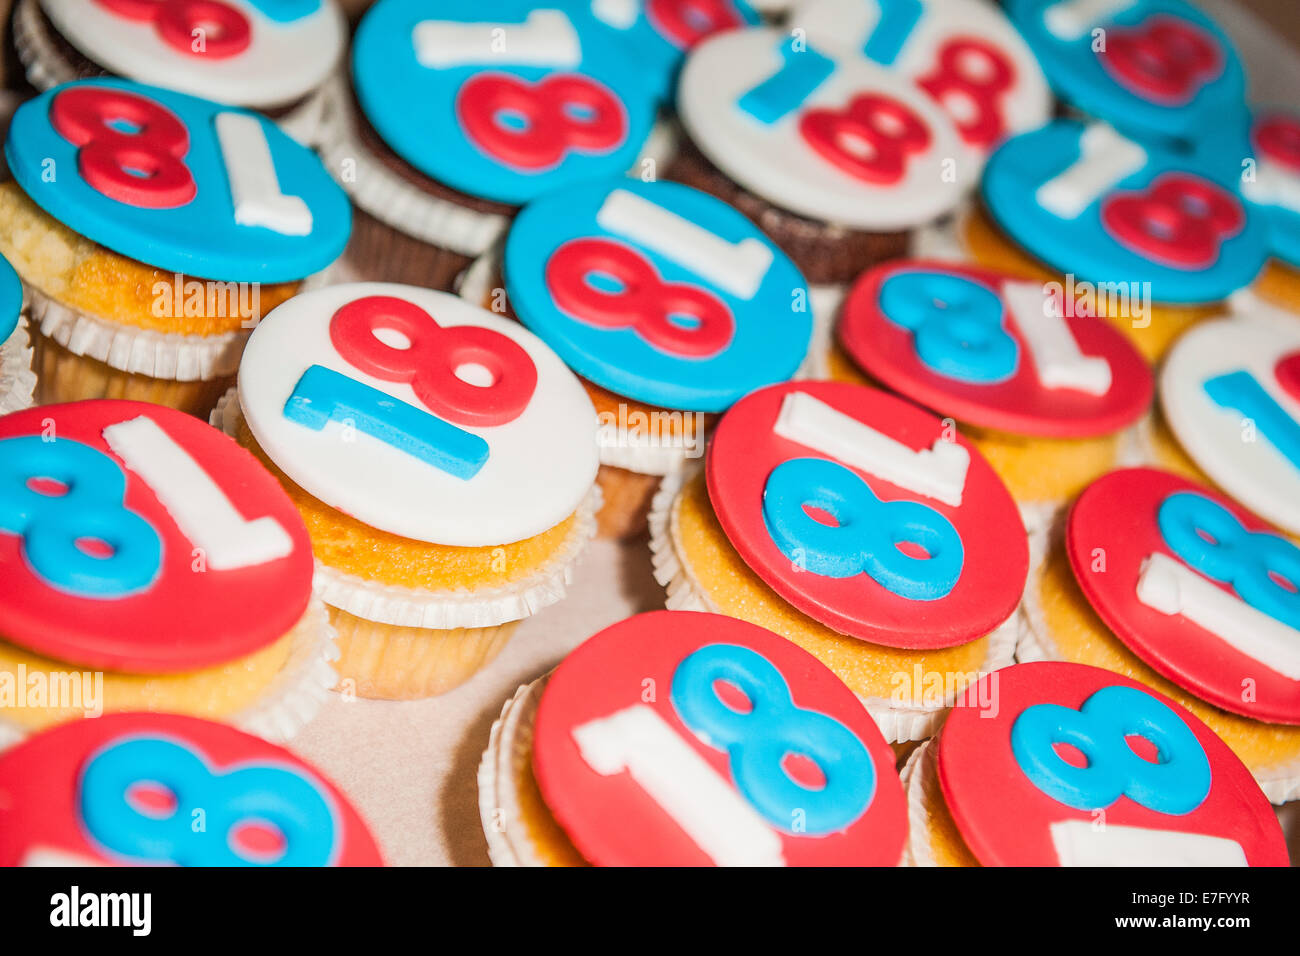 Capcake sweet and colorful custom to celebrate birthday of 18 years, when you become an adult - Stock Image